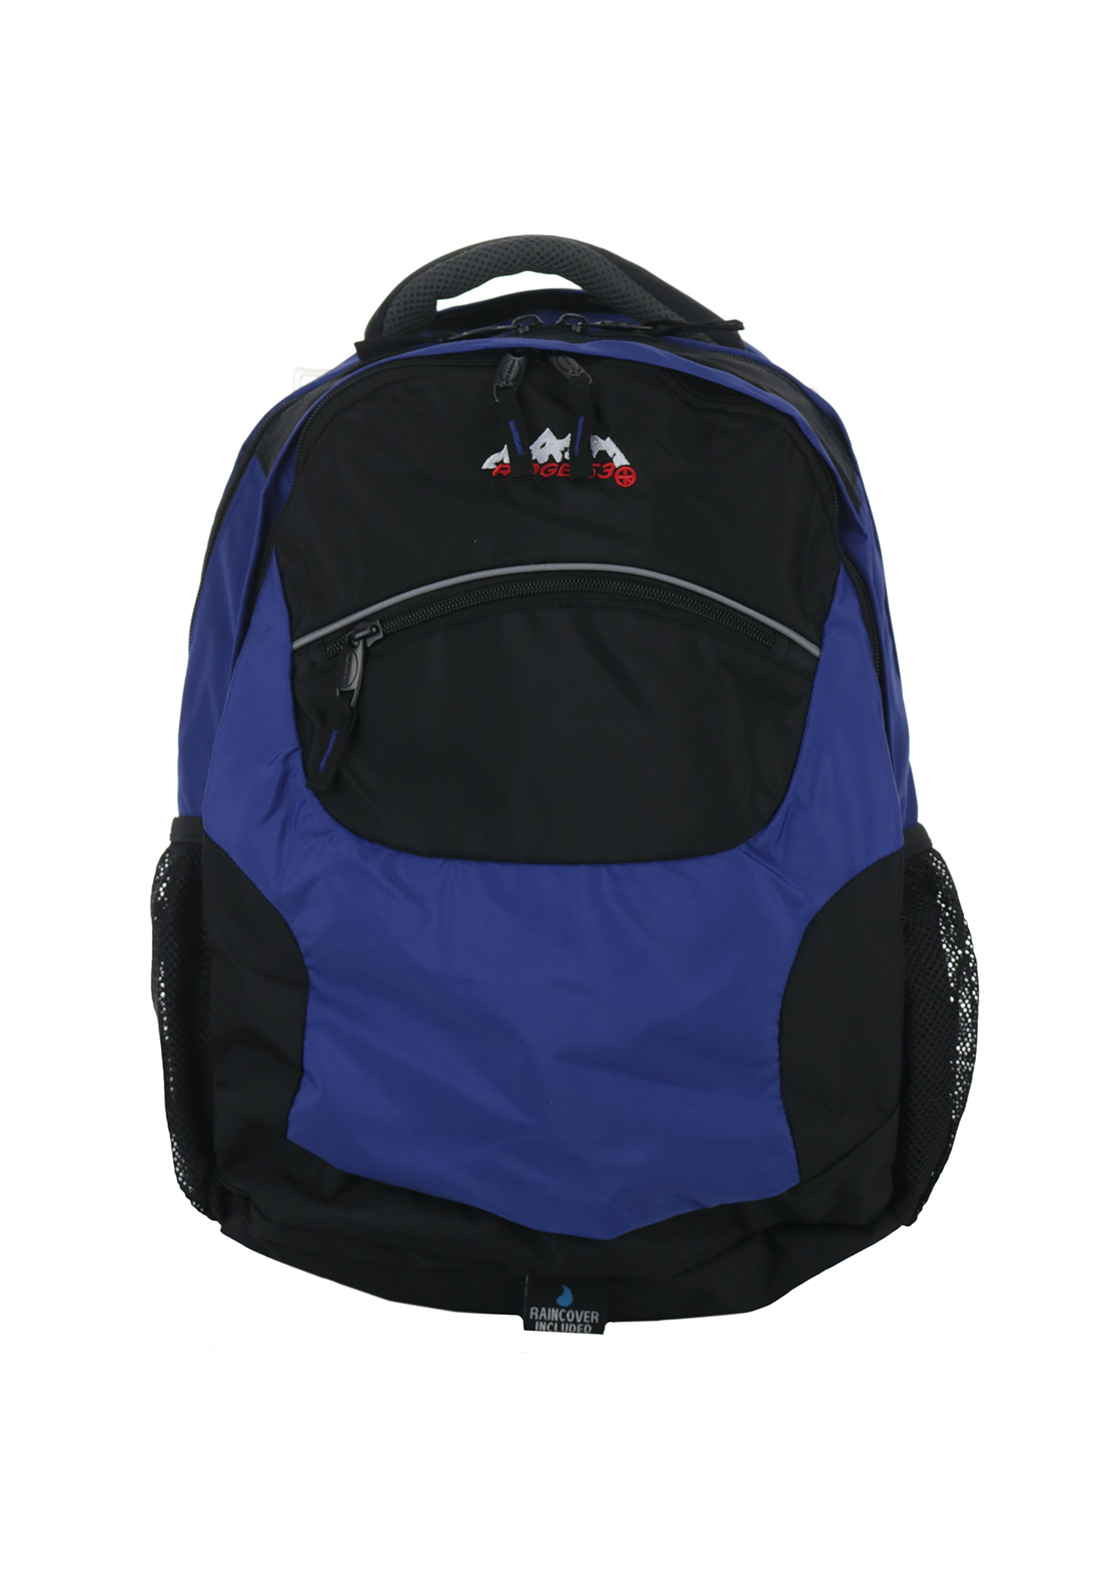 Ridge 53 Vogue Backpack Schoolbag, Blue